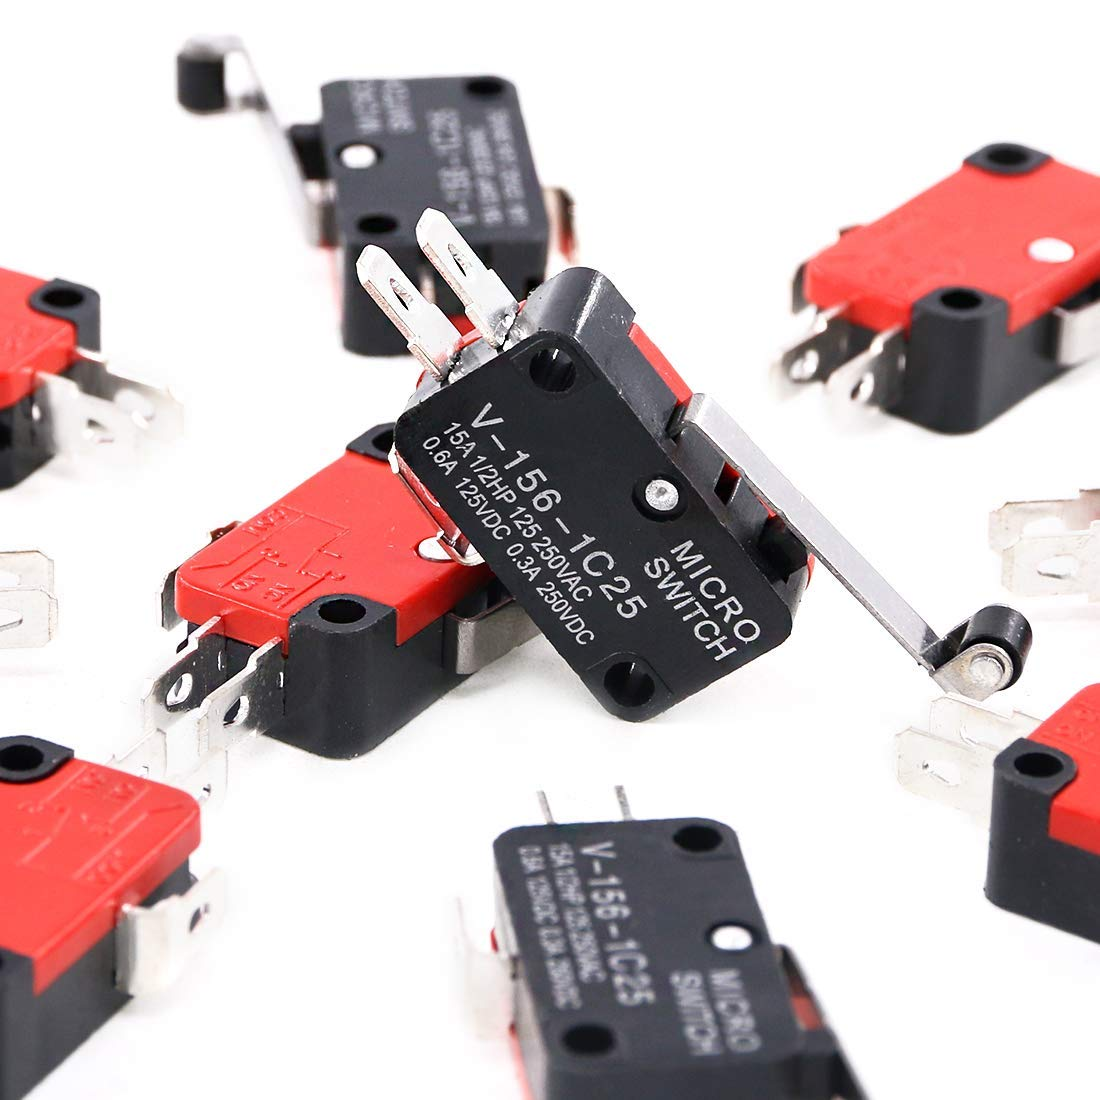 156 CESFONJER Micro switch limit v 1C25 Longue Charniere Levier a Galet Bras SPDT action snap lOT 8PCS